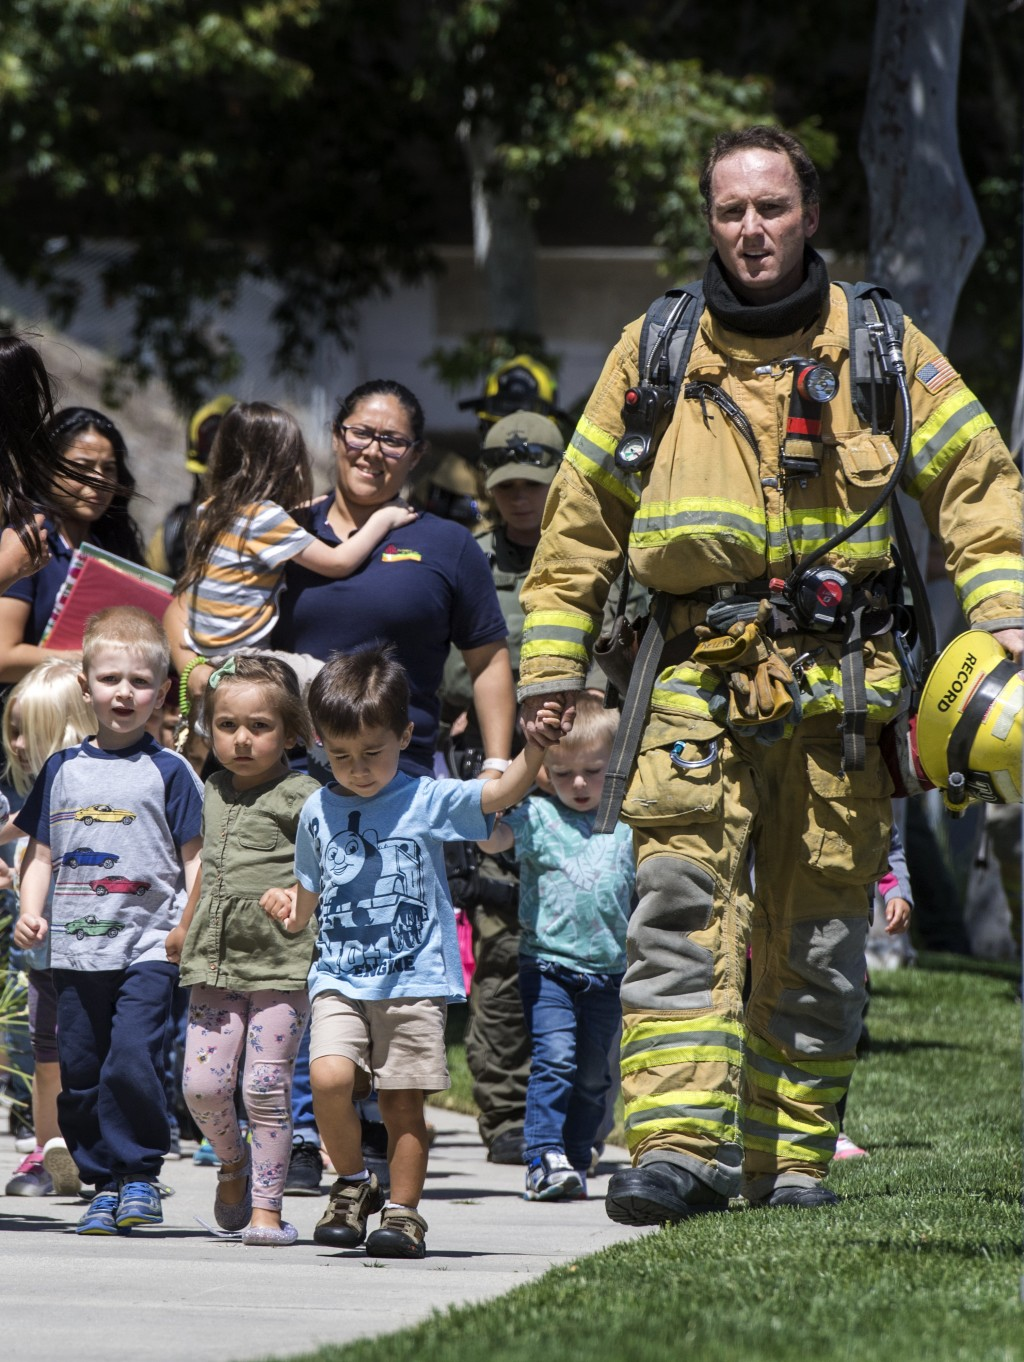 Firefighters and sheriff's deputies escort children from Academy on the Hill pre-k school in Aliso Viejo, Calif., on Tuesday, May 15, 2018, after a fa